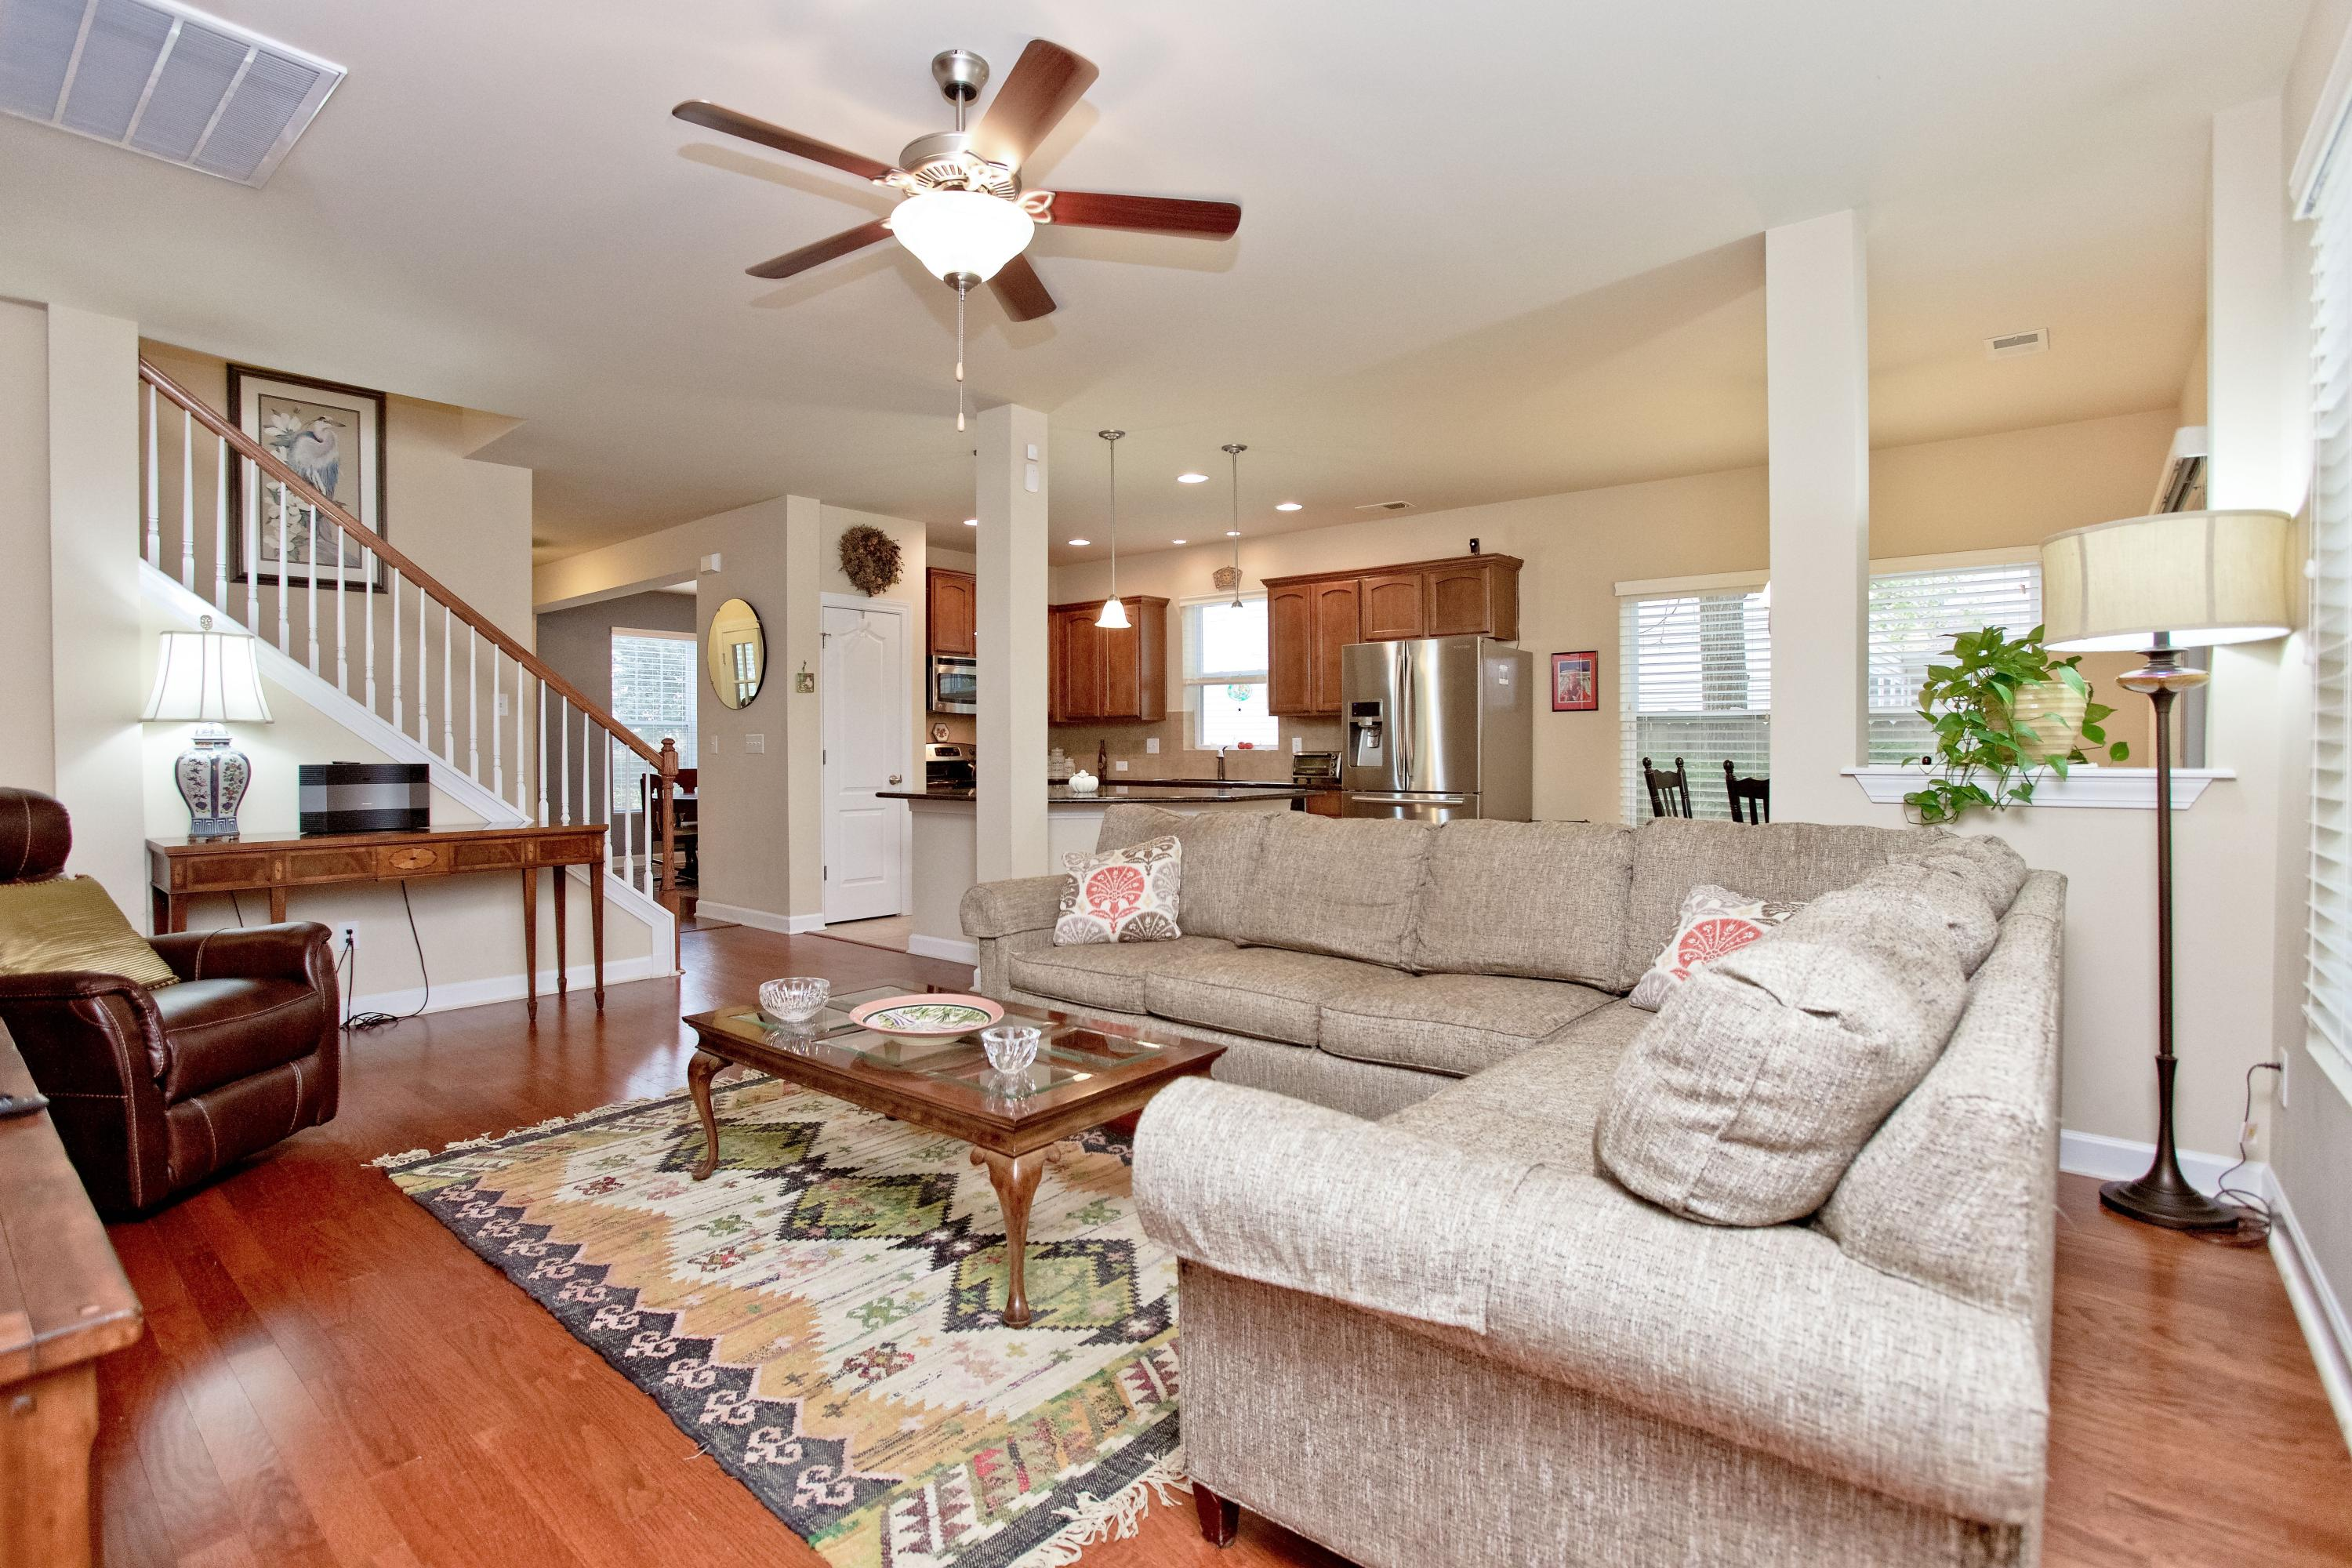 Appian Way Homes For Sale - 8473 Athens, North Charleston, SC - 7